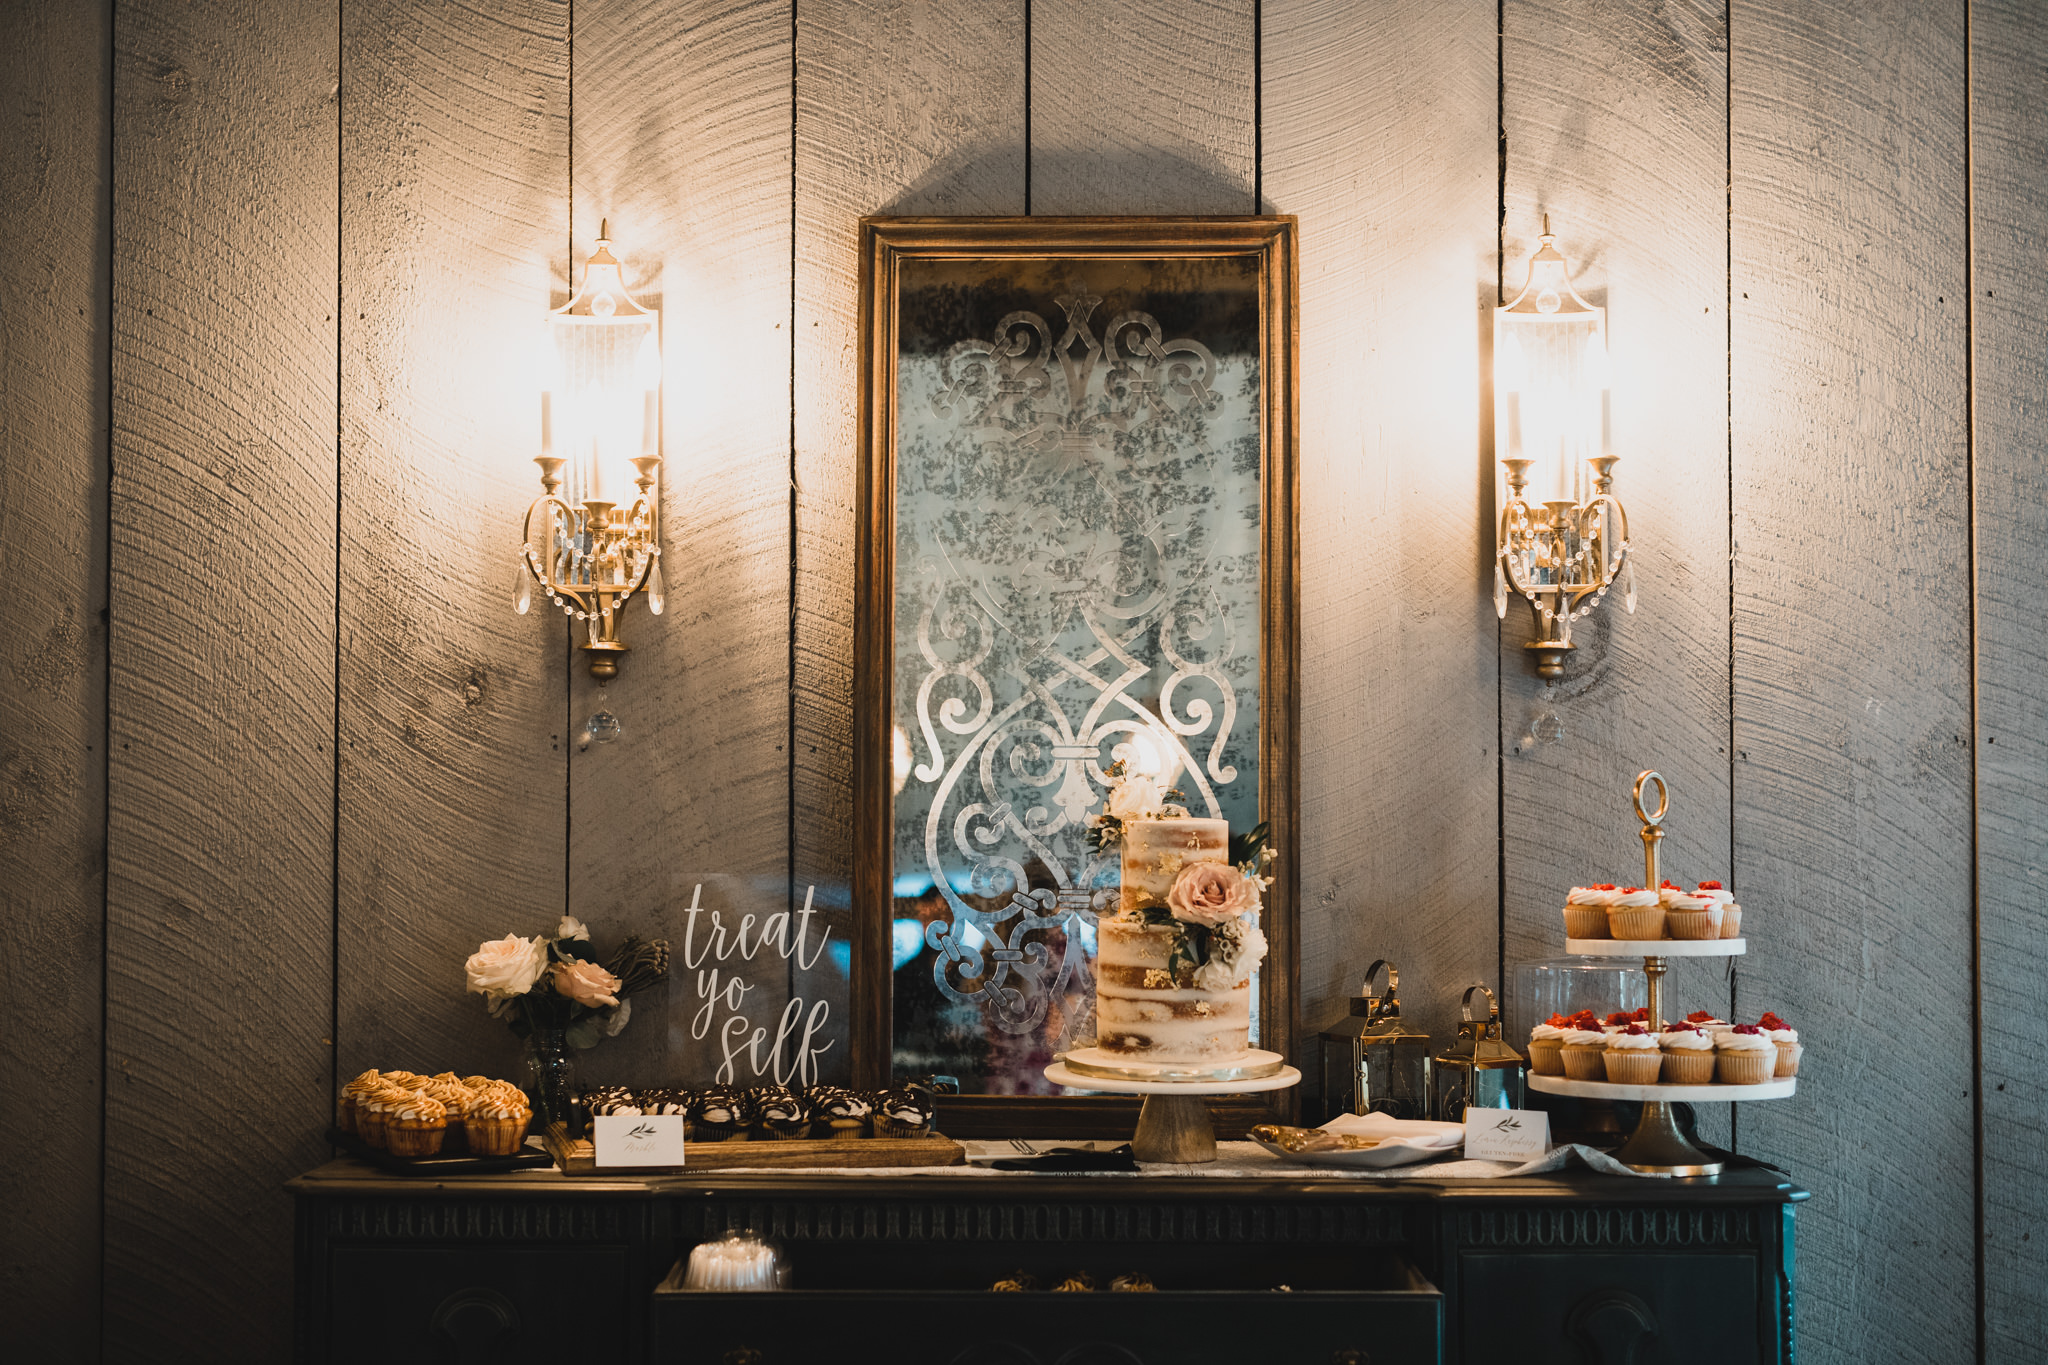 Dessert Table with Cake & Cupcakes